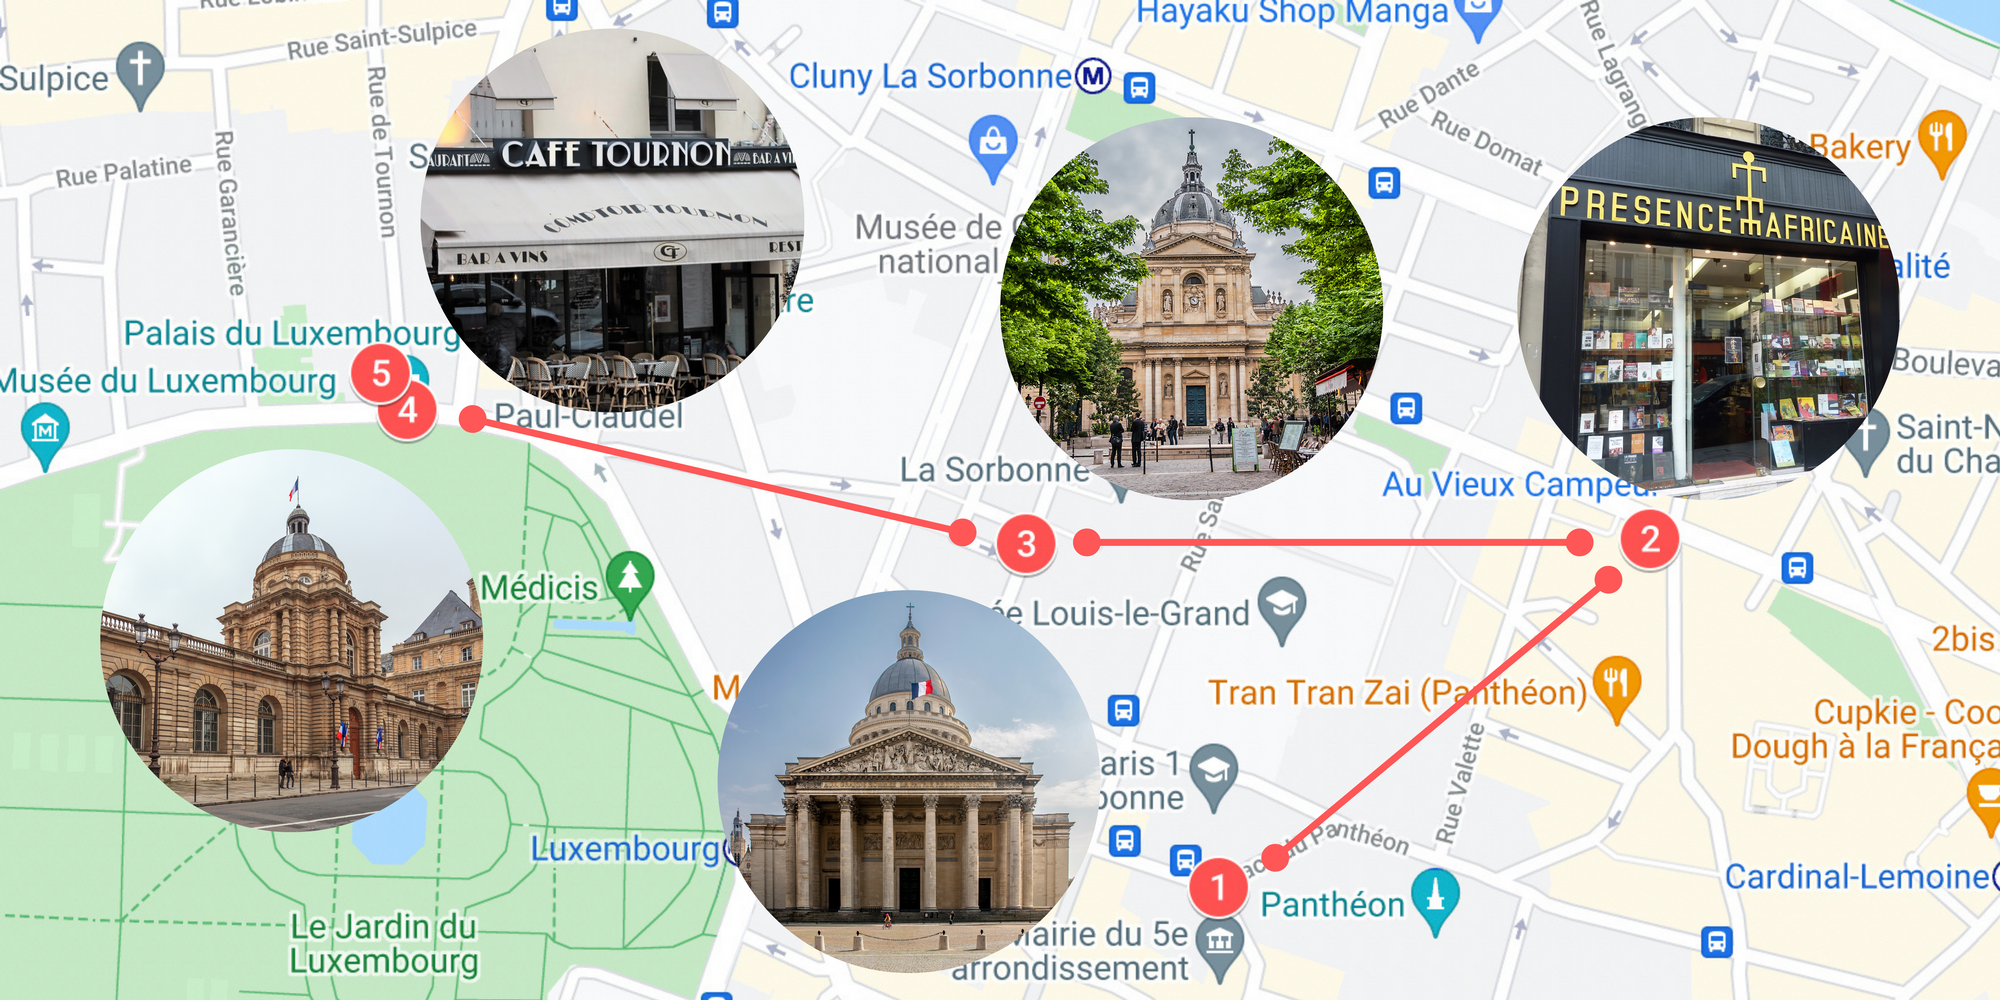 Screenshot of a Goole Map, zoomed in on a neighborhood of Paris. There are five locations numbered in red and red walking paths between them. Each of the five locations has a large, circular photograph of the actual site. The sites include cafés, stores, and buildings.